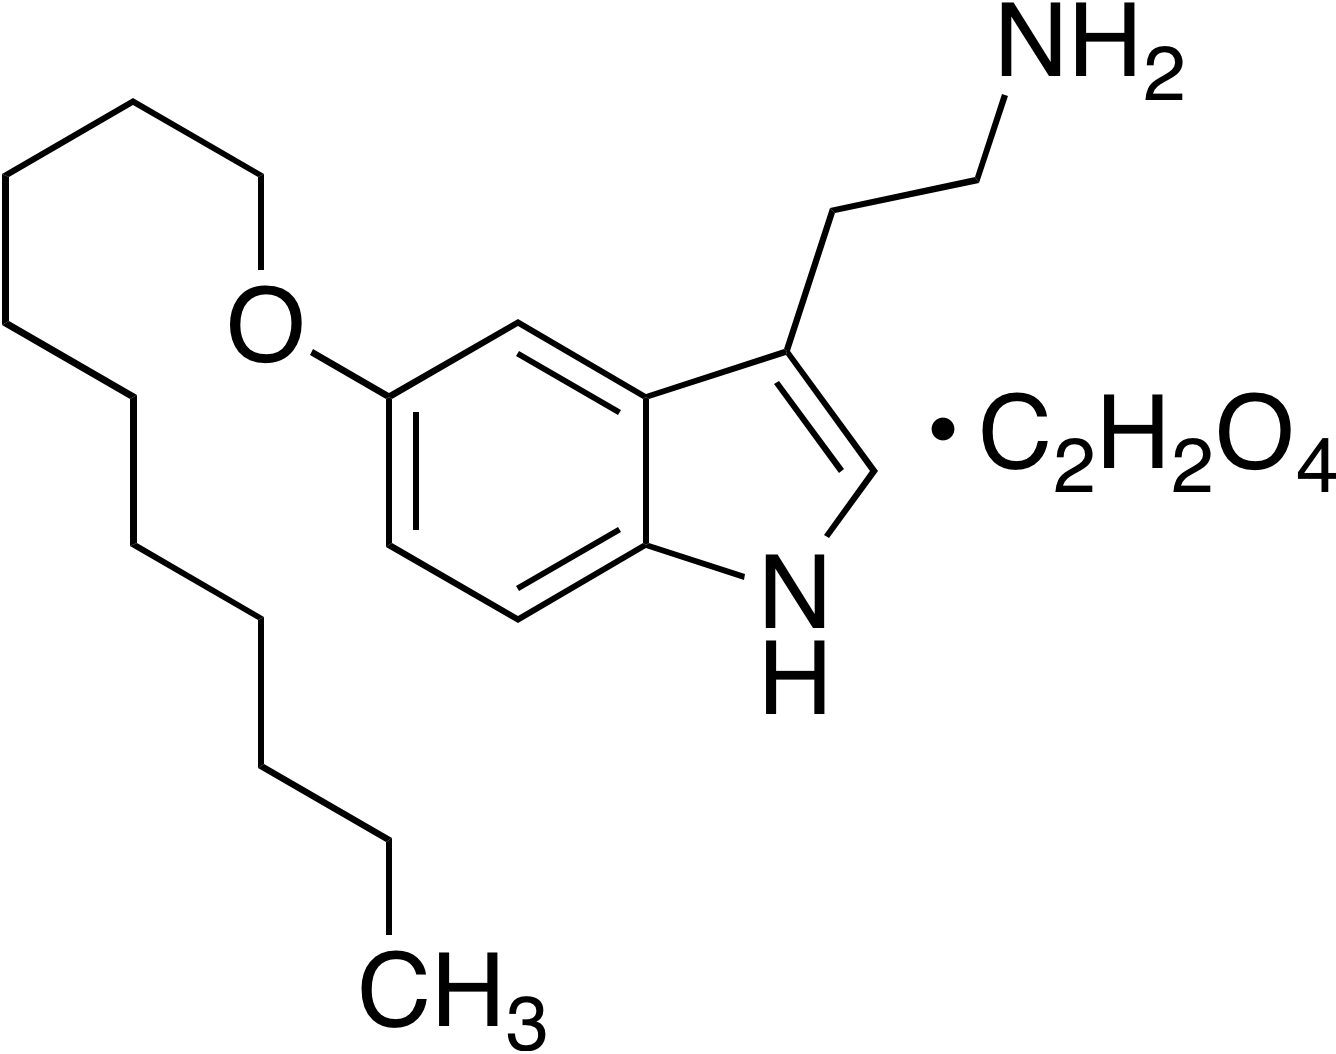 5-Decyloxytryptamine oxalate